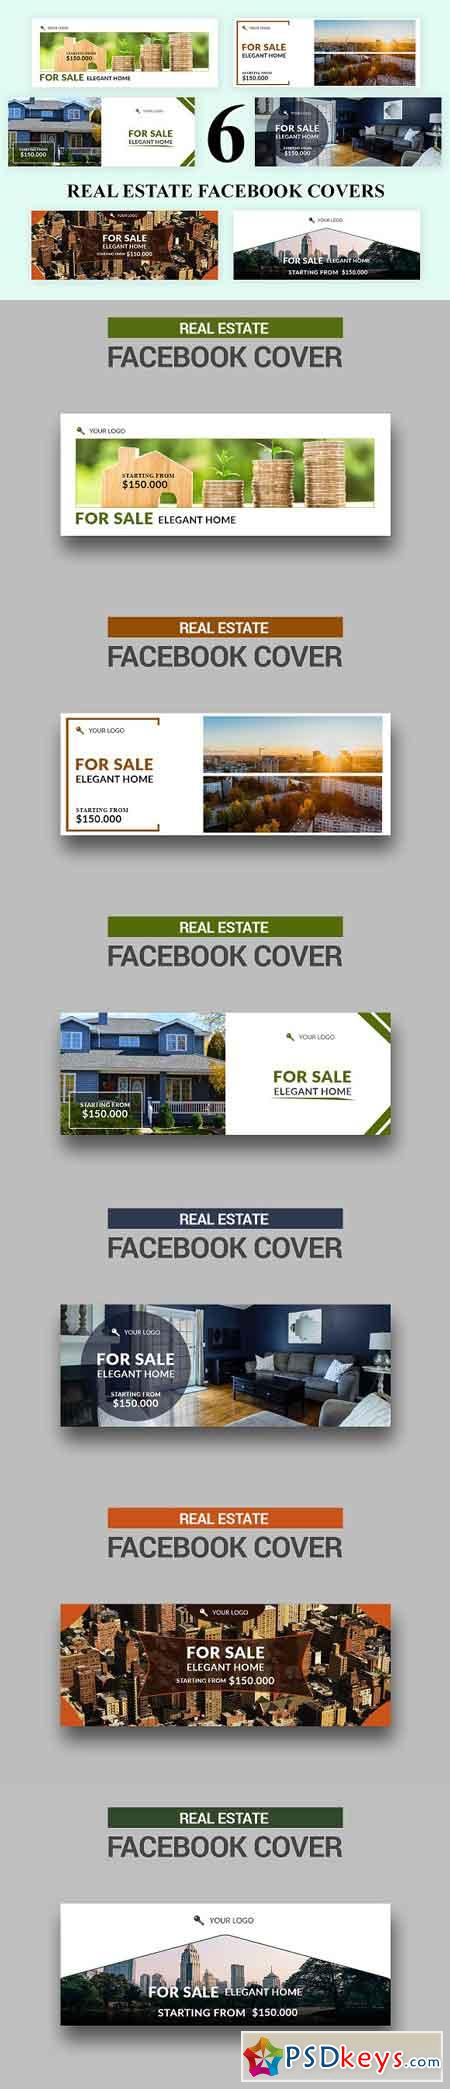 Real Estate Facebook Covers - SK 3032867